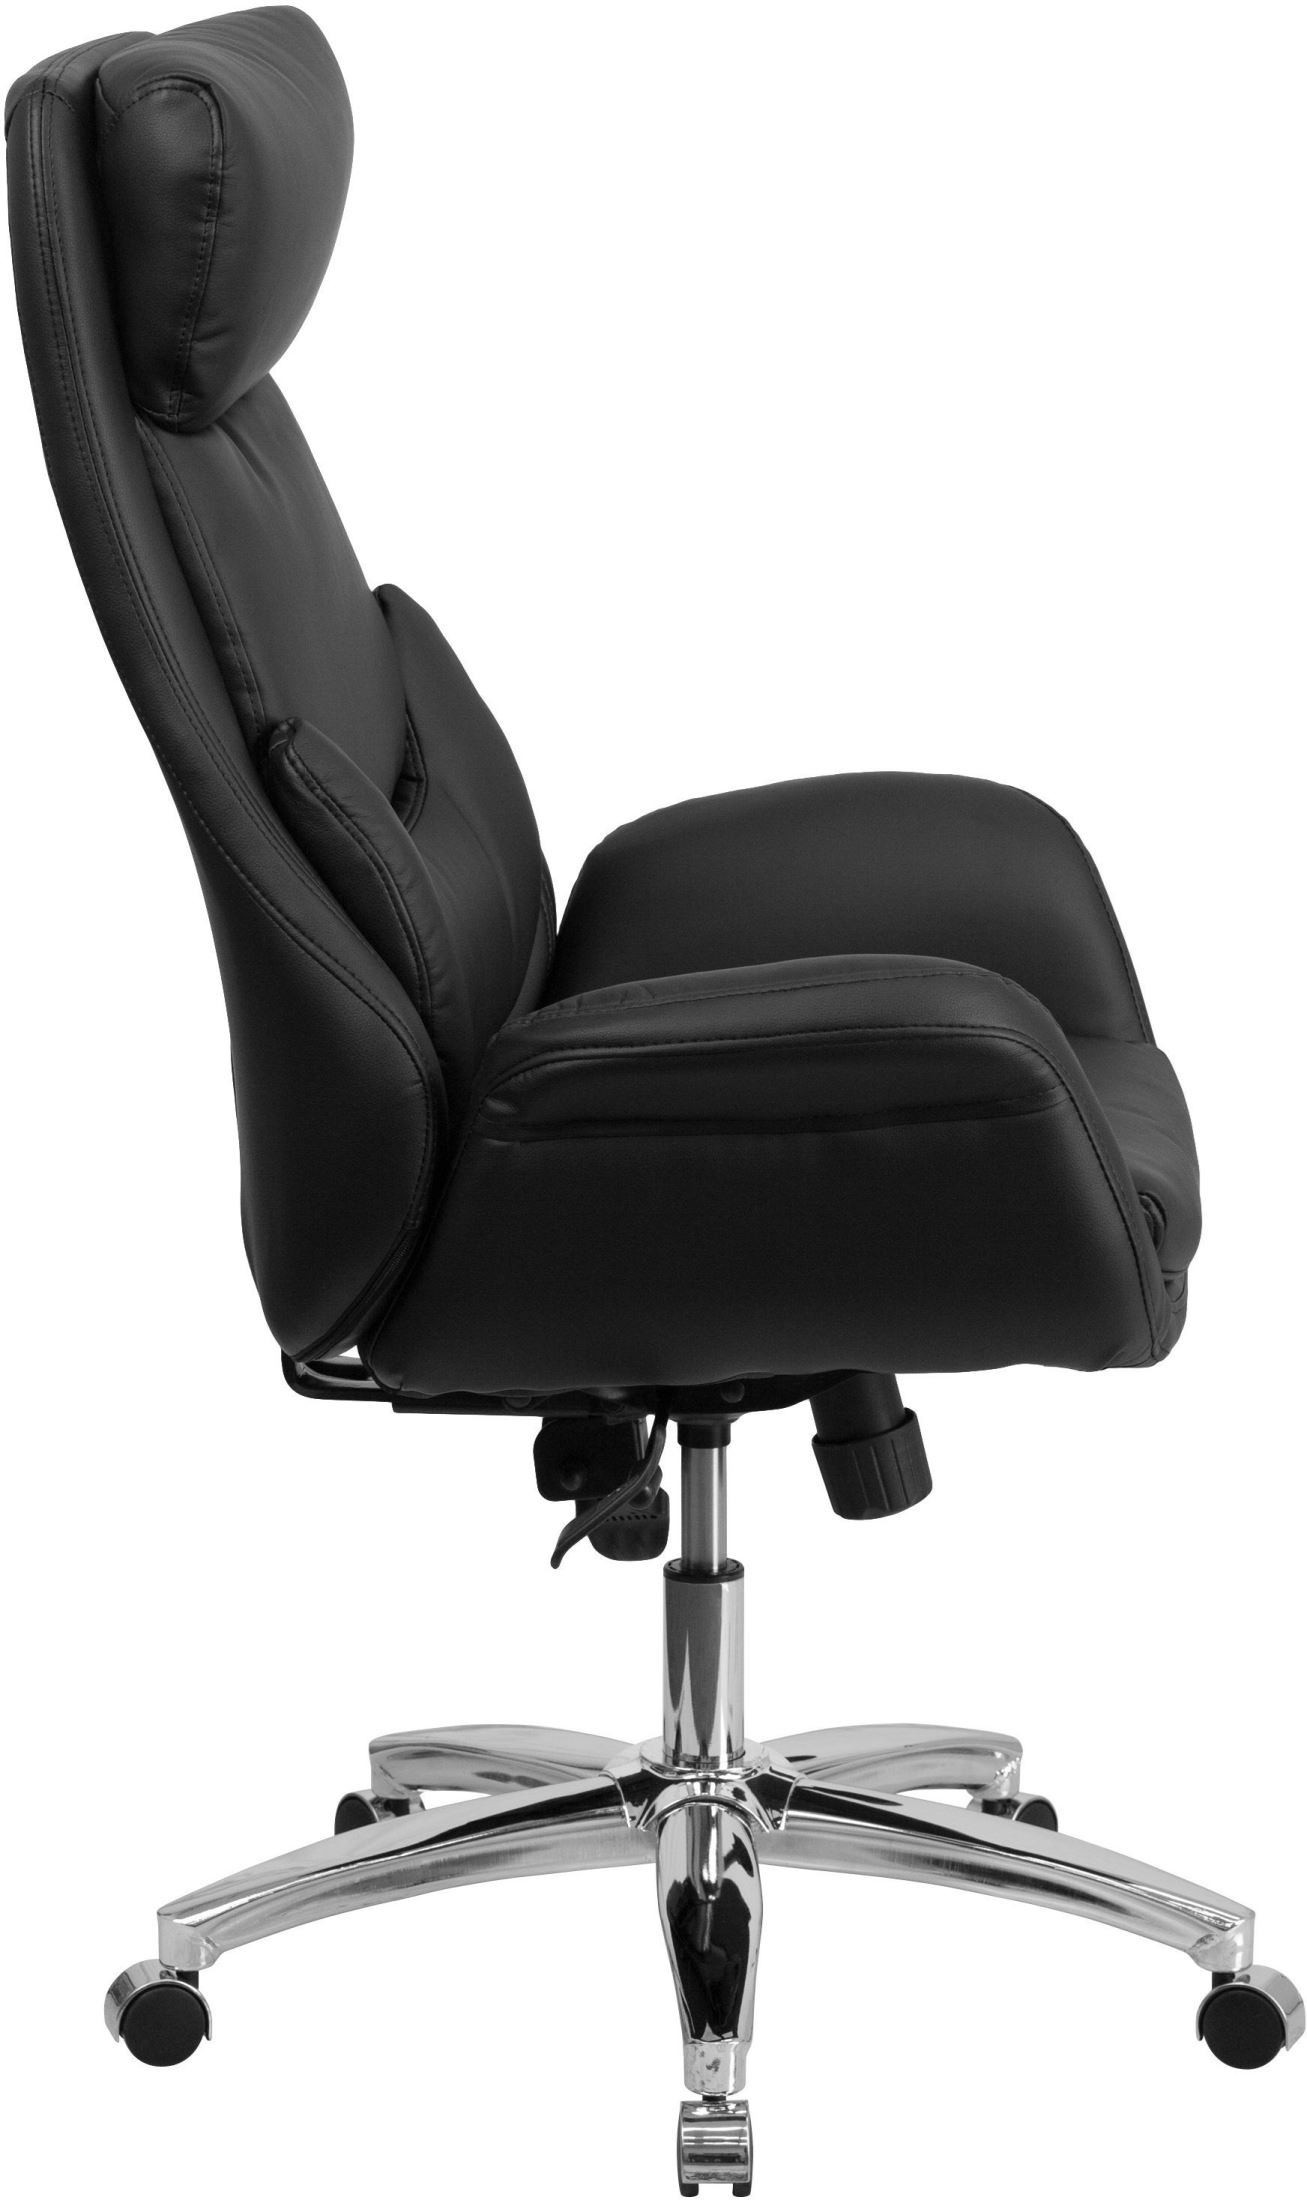 Lumbar Pillow For Chair Tall Black Executive Swivel Office Chair With Lumbar